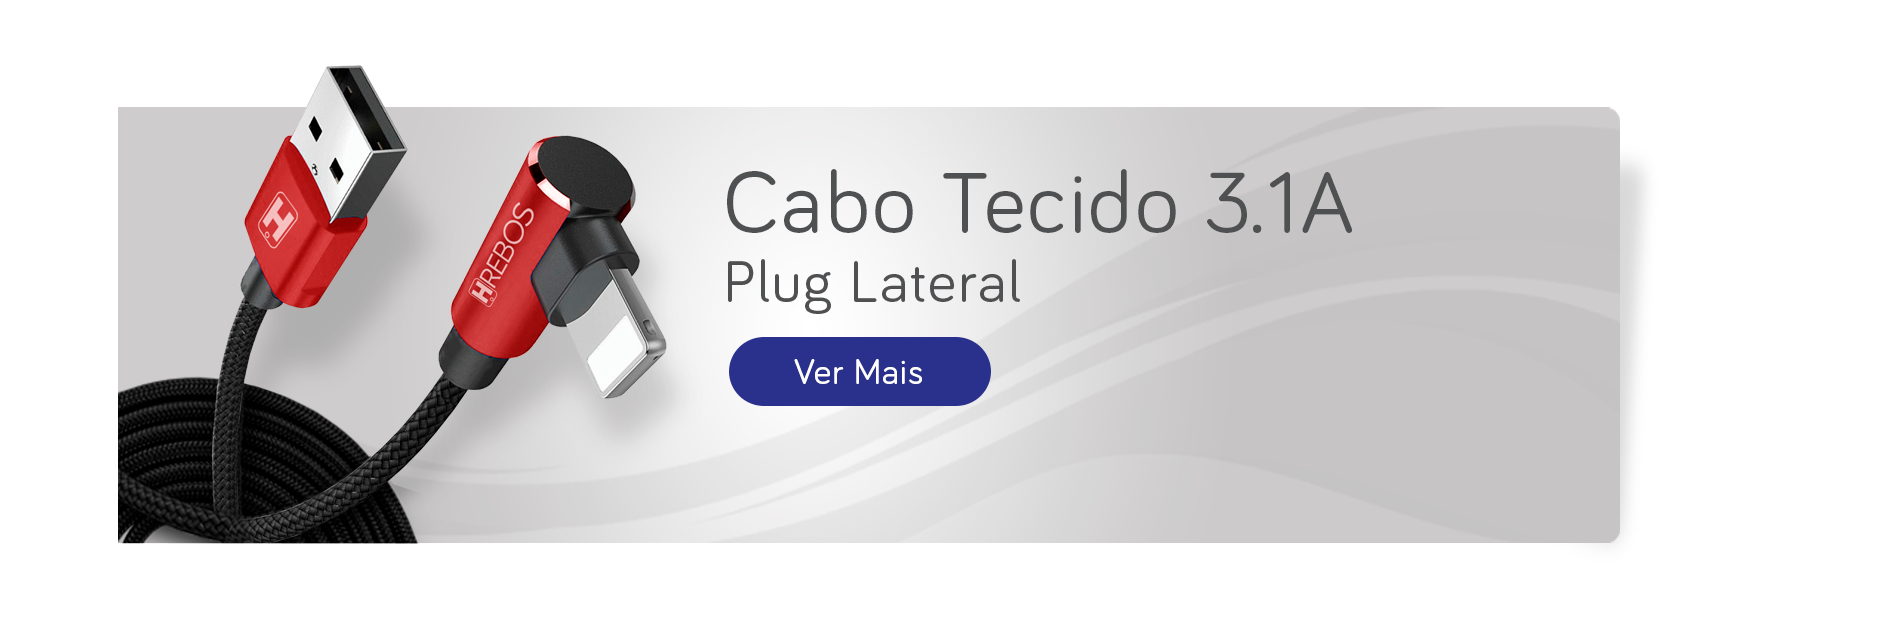 m-benner-cabo-tecido-lateral